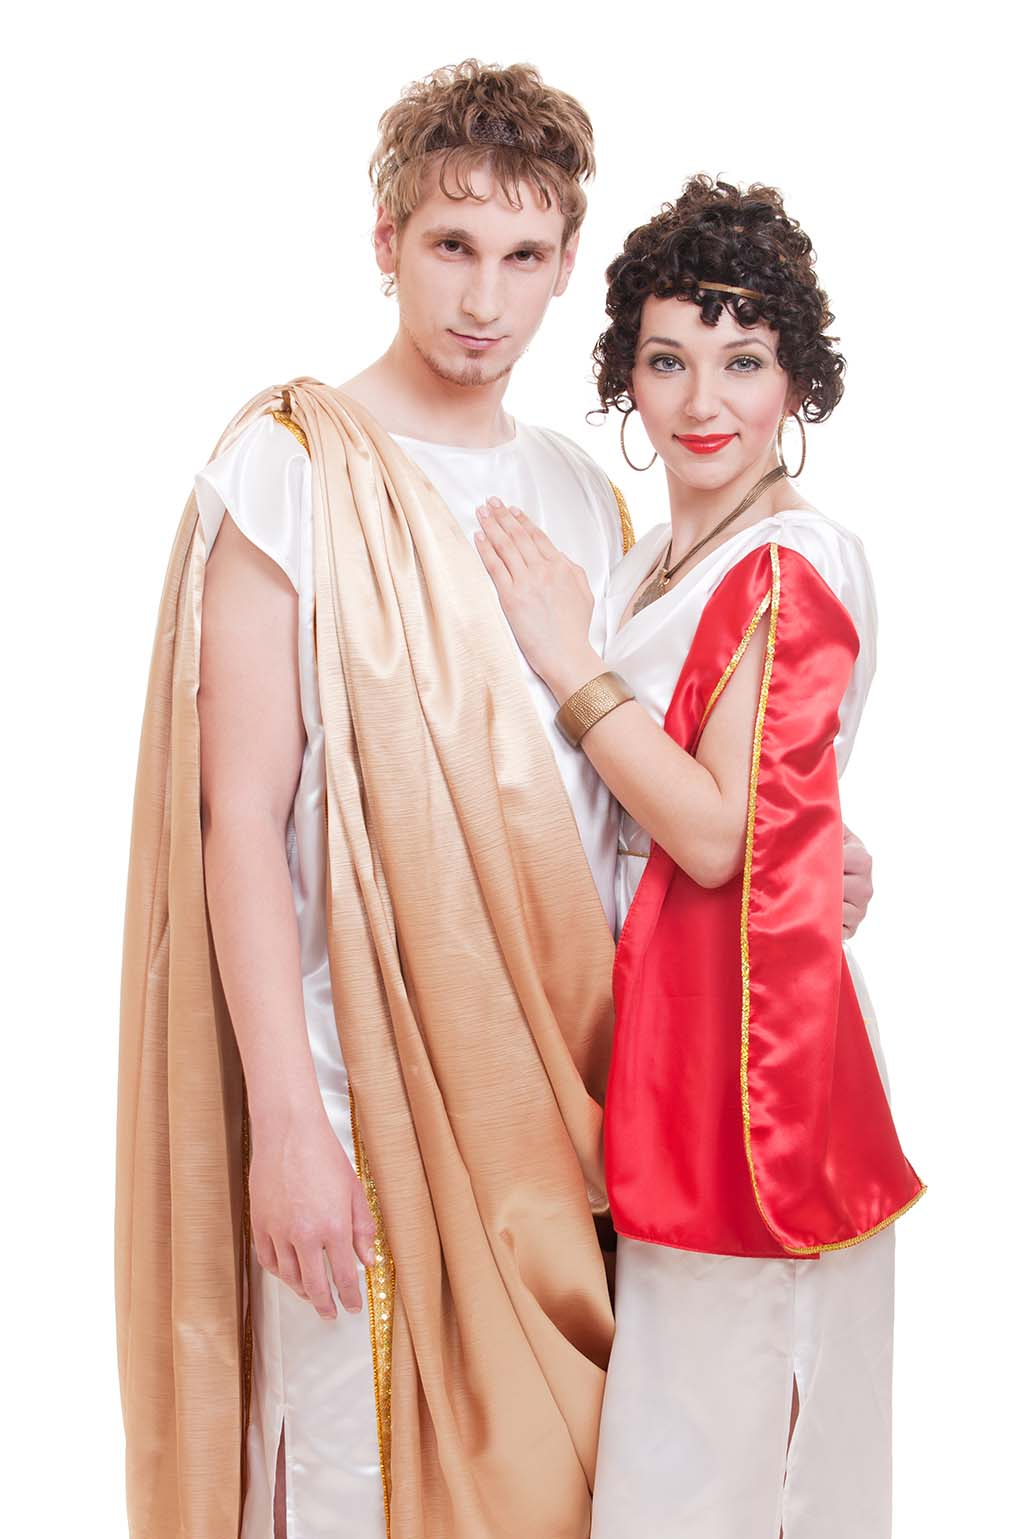 A couple dressed in old greek style